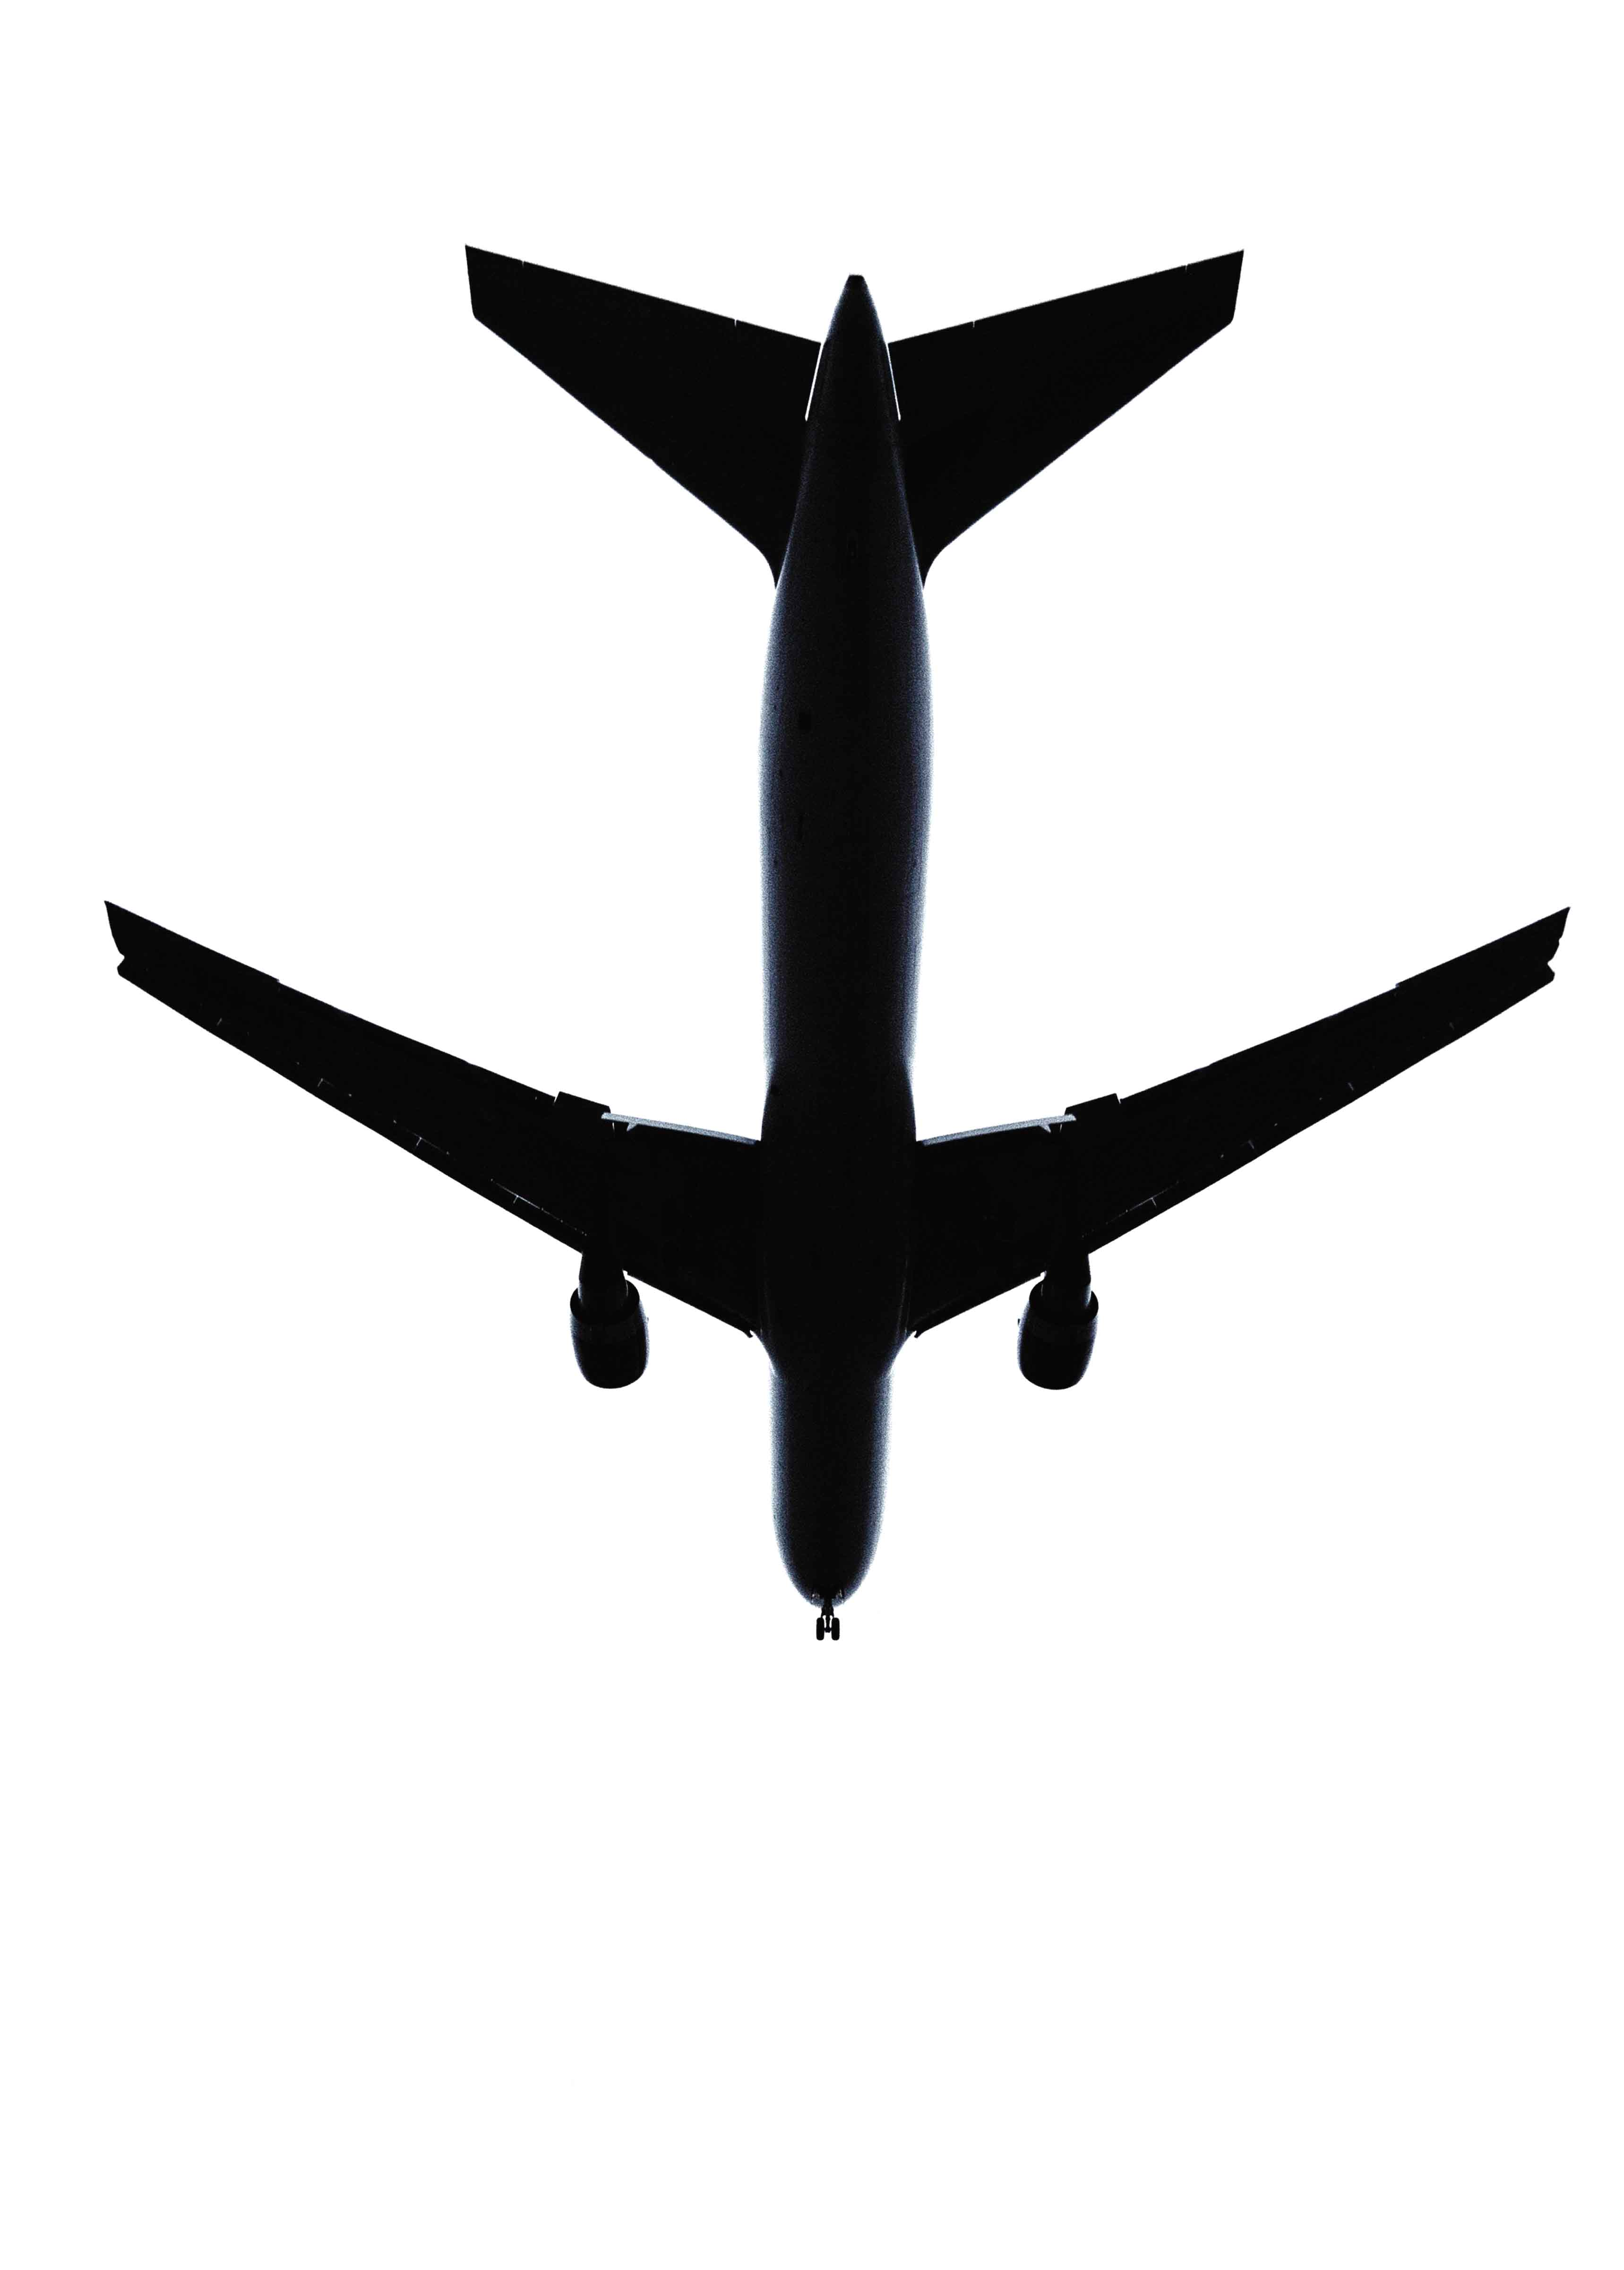 Top View Of A Plane.